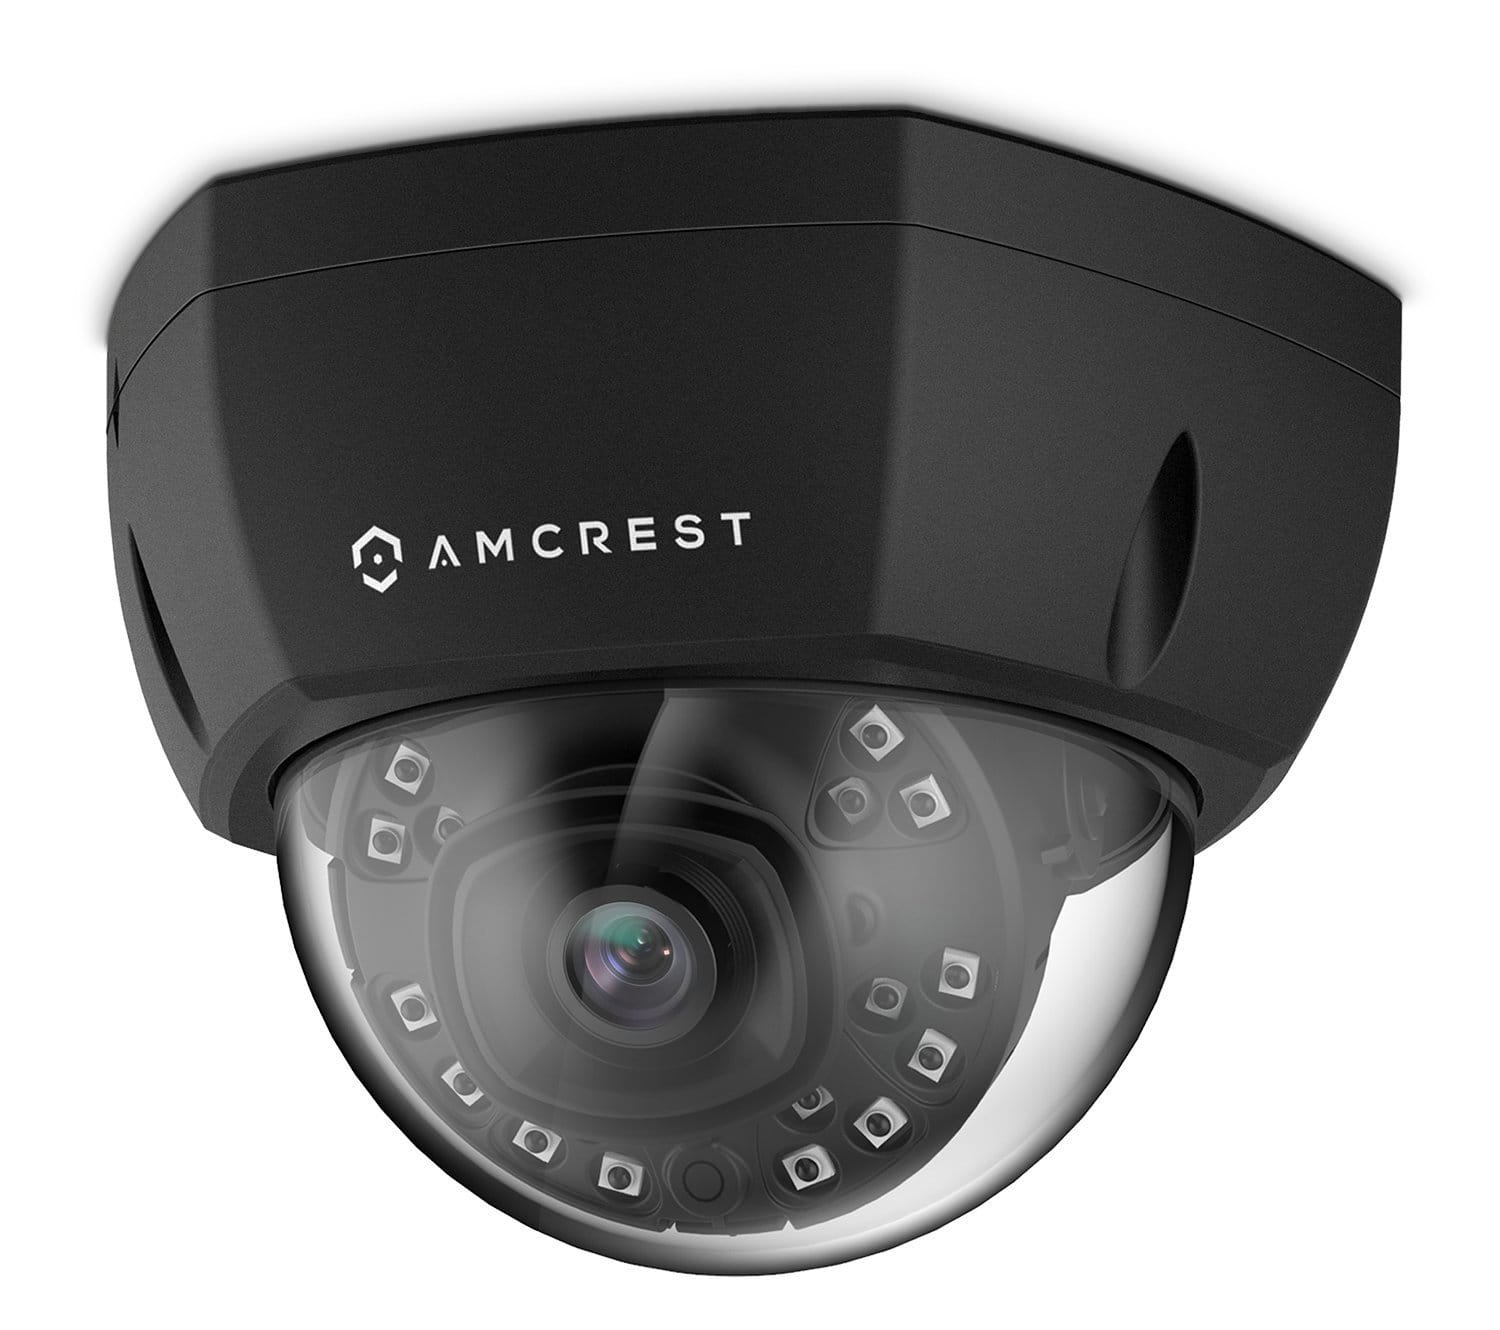 Amcrest New 1080p PoE IP Outdoor Security Cameras for $69.99 + FS